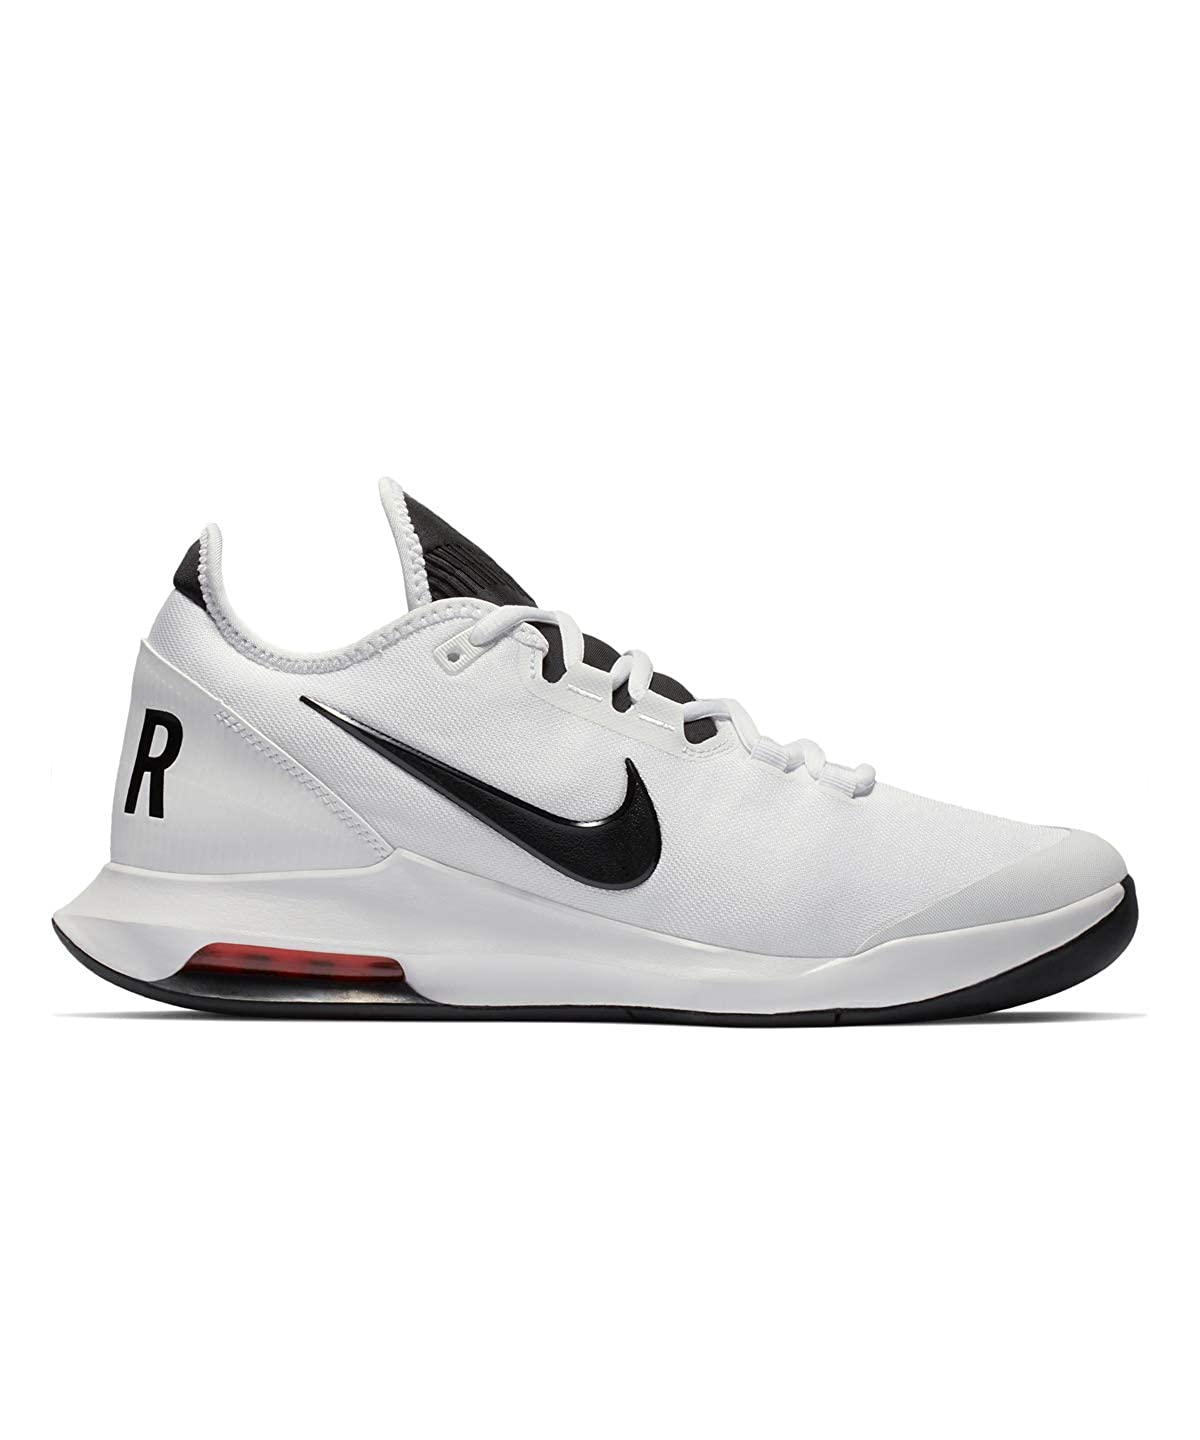 ad51392f8a63 Amazon.com | Nike AO7351-100: Men's Air Max Wildcard Red/White/Black Tennis  Sneakers | Basketball